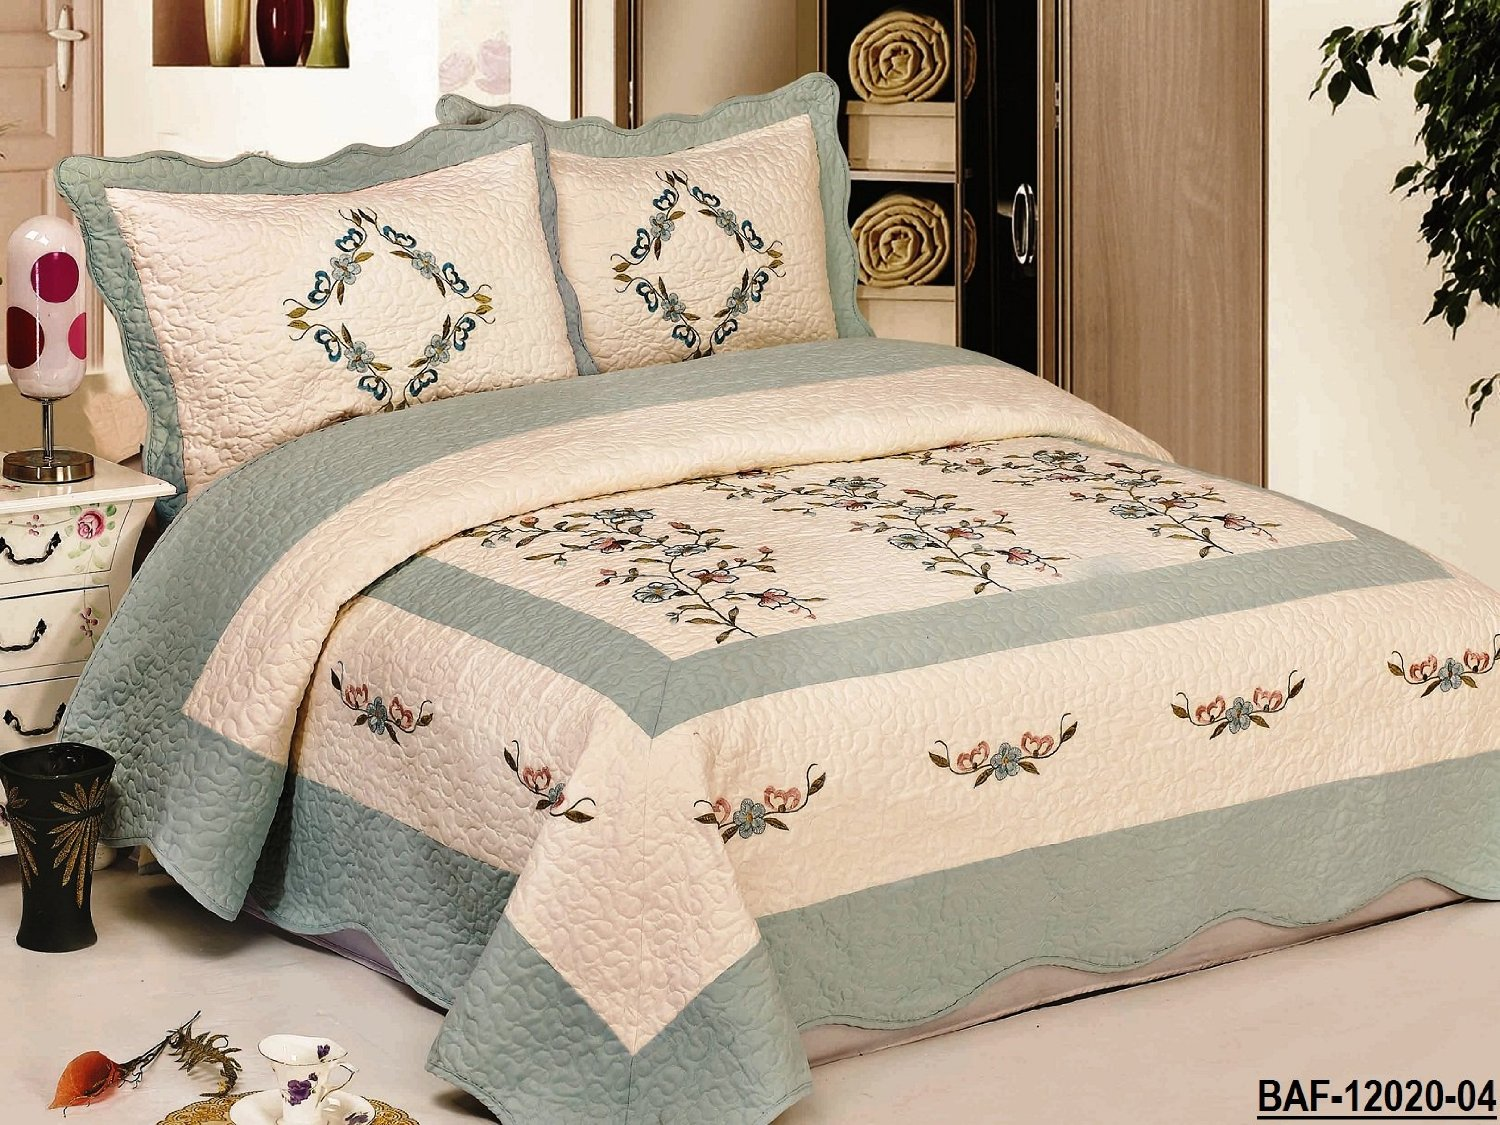 Brazilian embroidery bedspread designs -  Brazilian Embroidery Bedspread Designs 2 Download